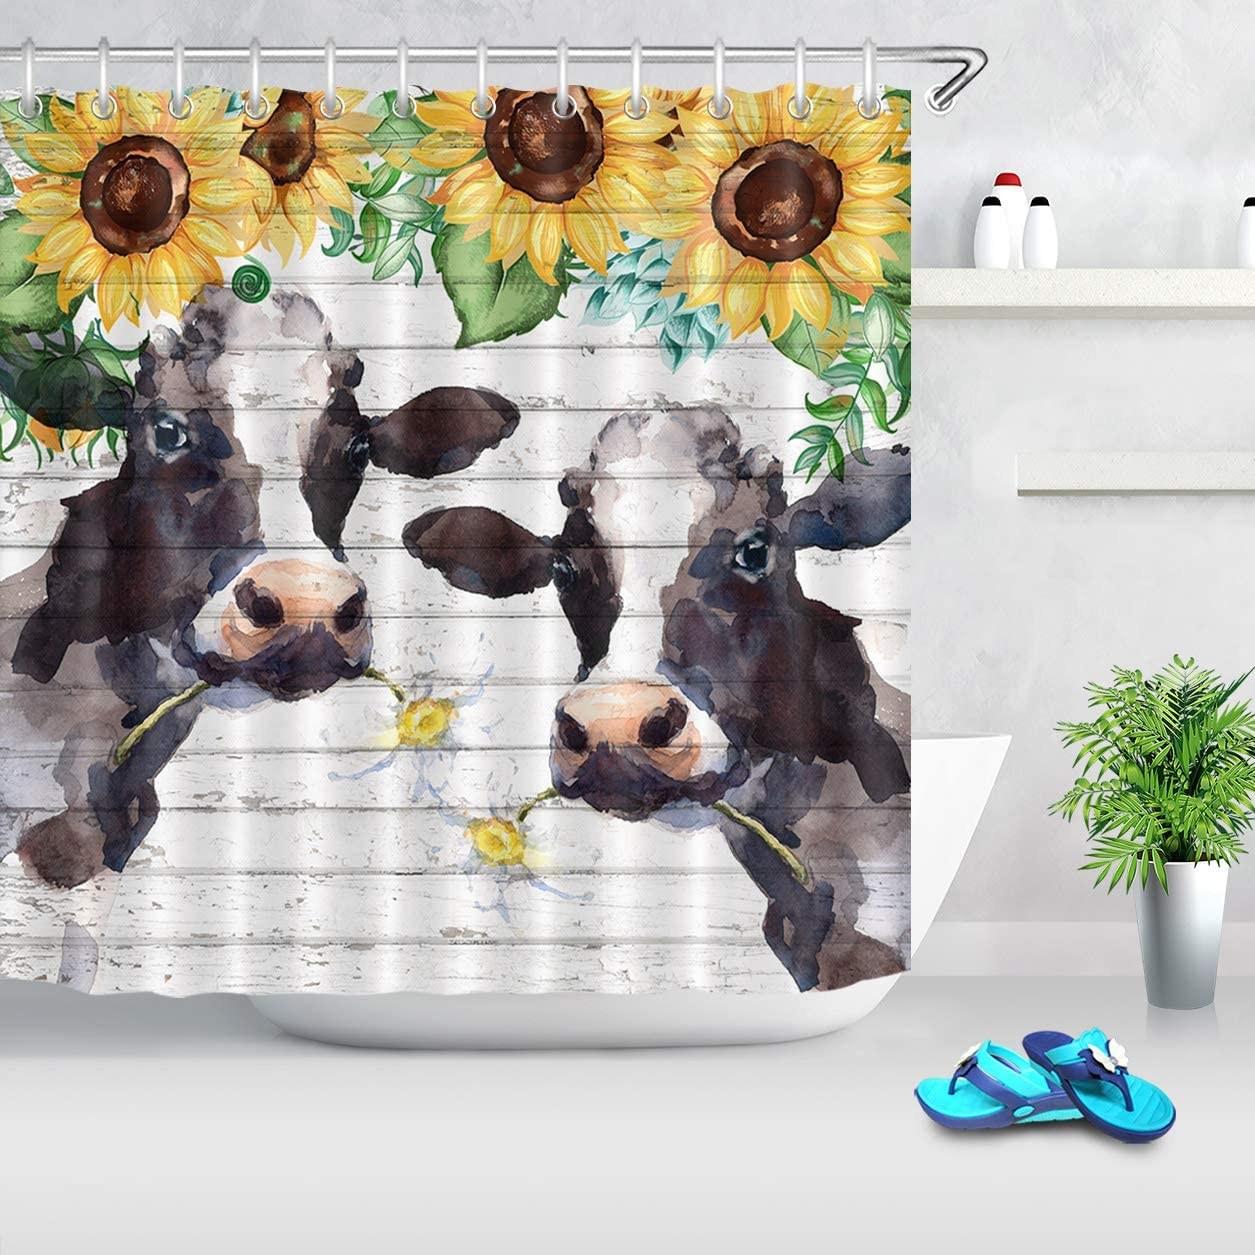 LB Watercolor Farm Cow Shower Curtain Farmhouse Animal Cattle with Daisy Yellow Sunflower Shower Curtain Funny Kids Bathroom Decor 72x72 Inch Polyester Fabric with 12 Hooks